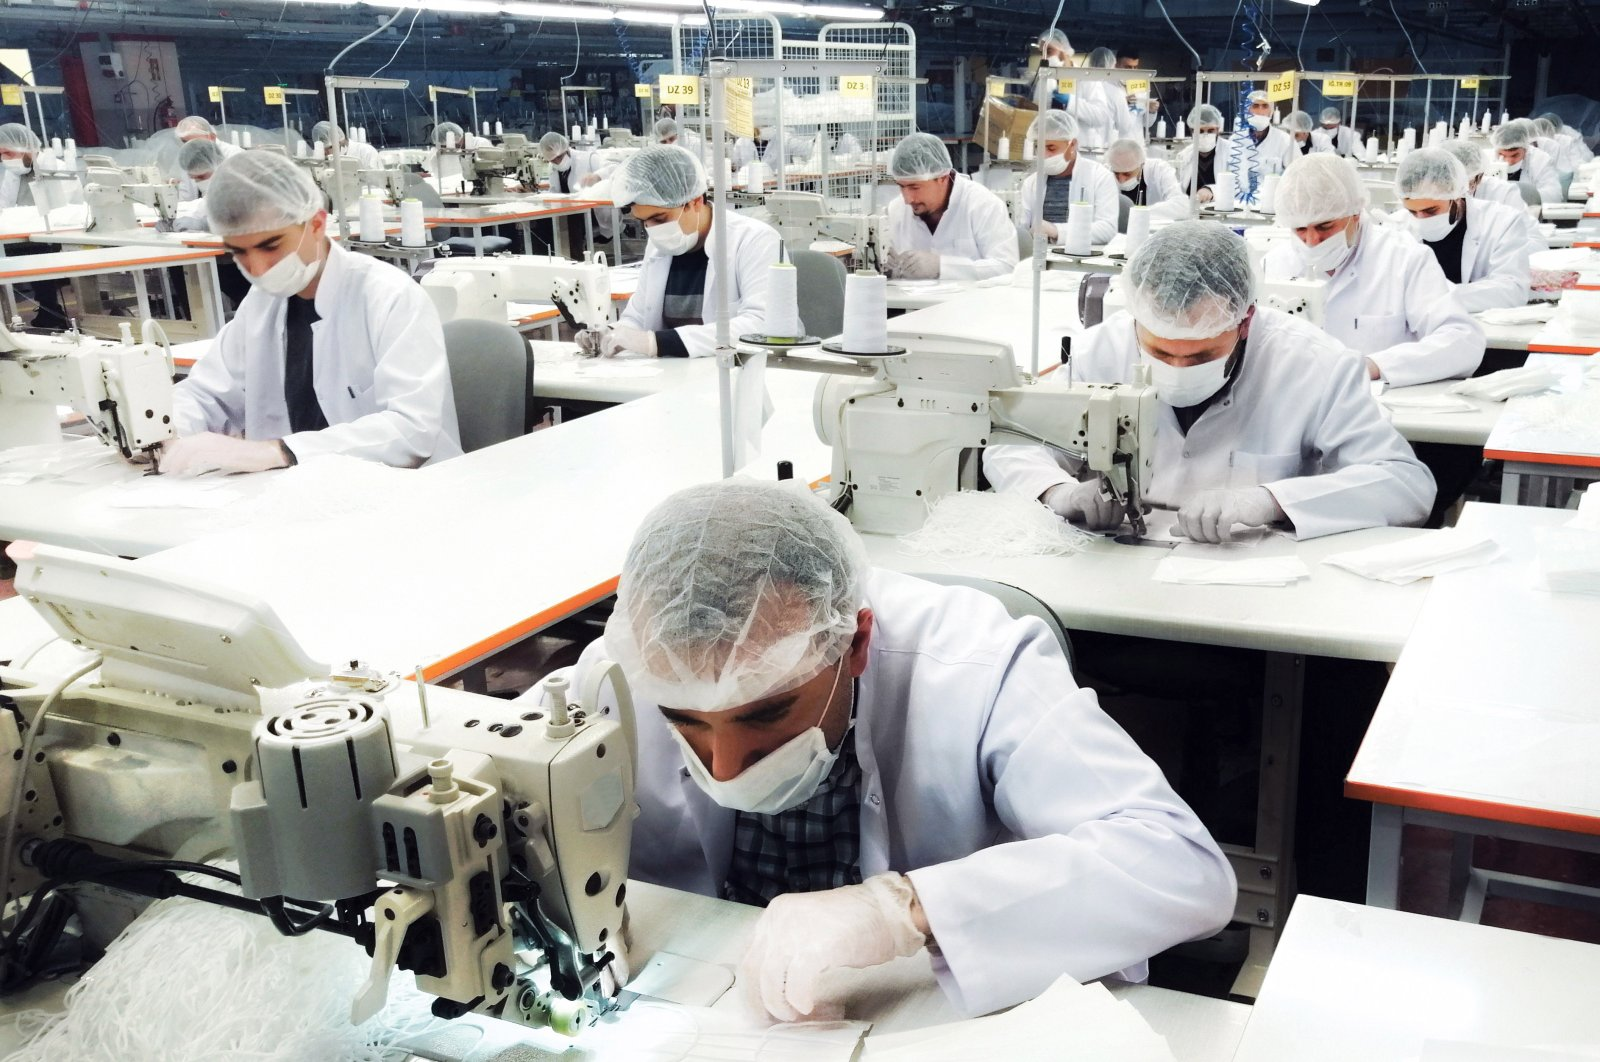 Turkish clothing retailer LC Waikiki produces face masks in all its factories amid fight against the coronavirus. (AA Photo)